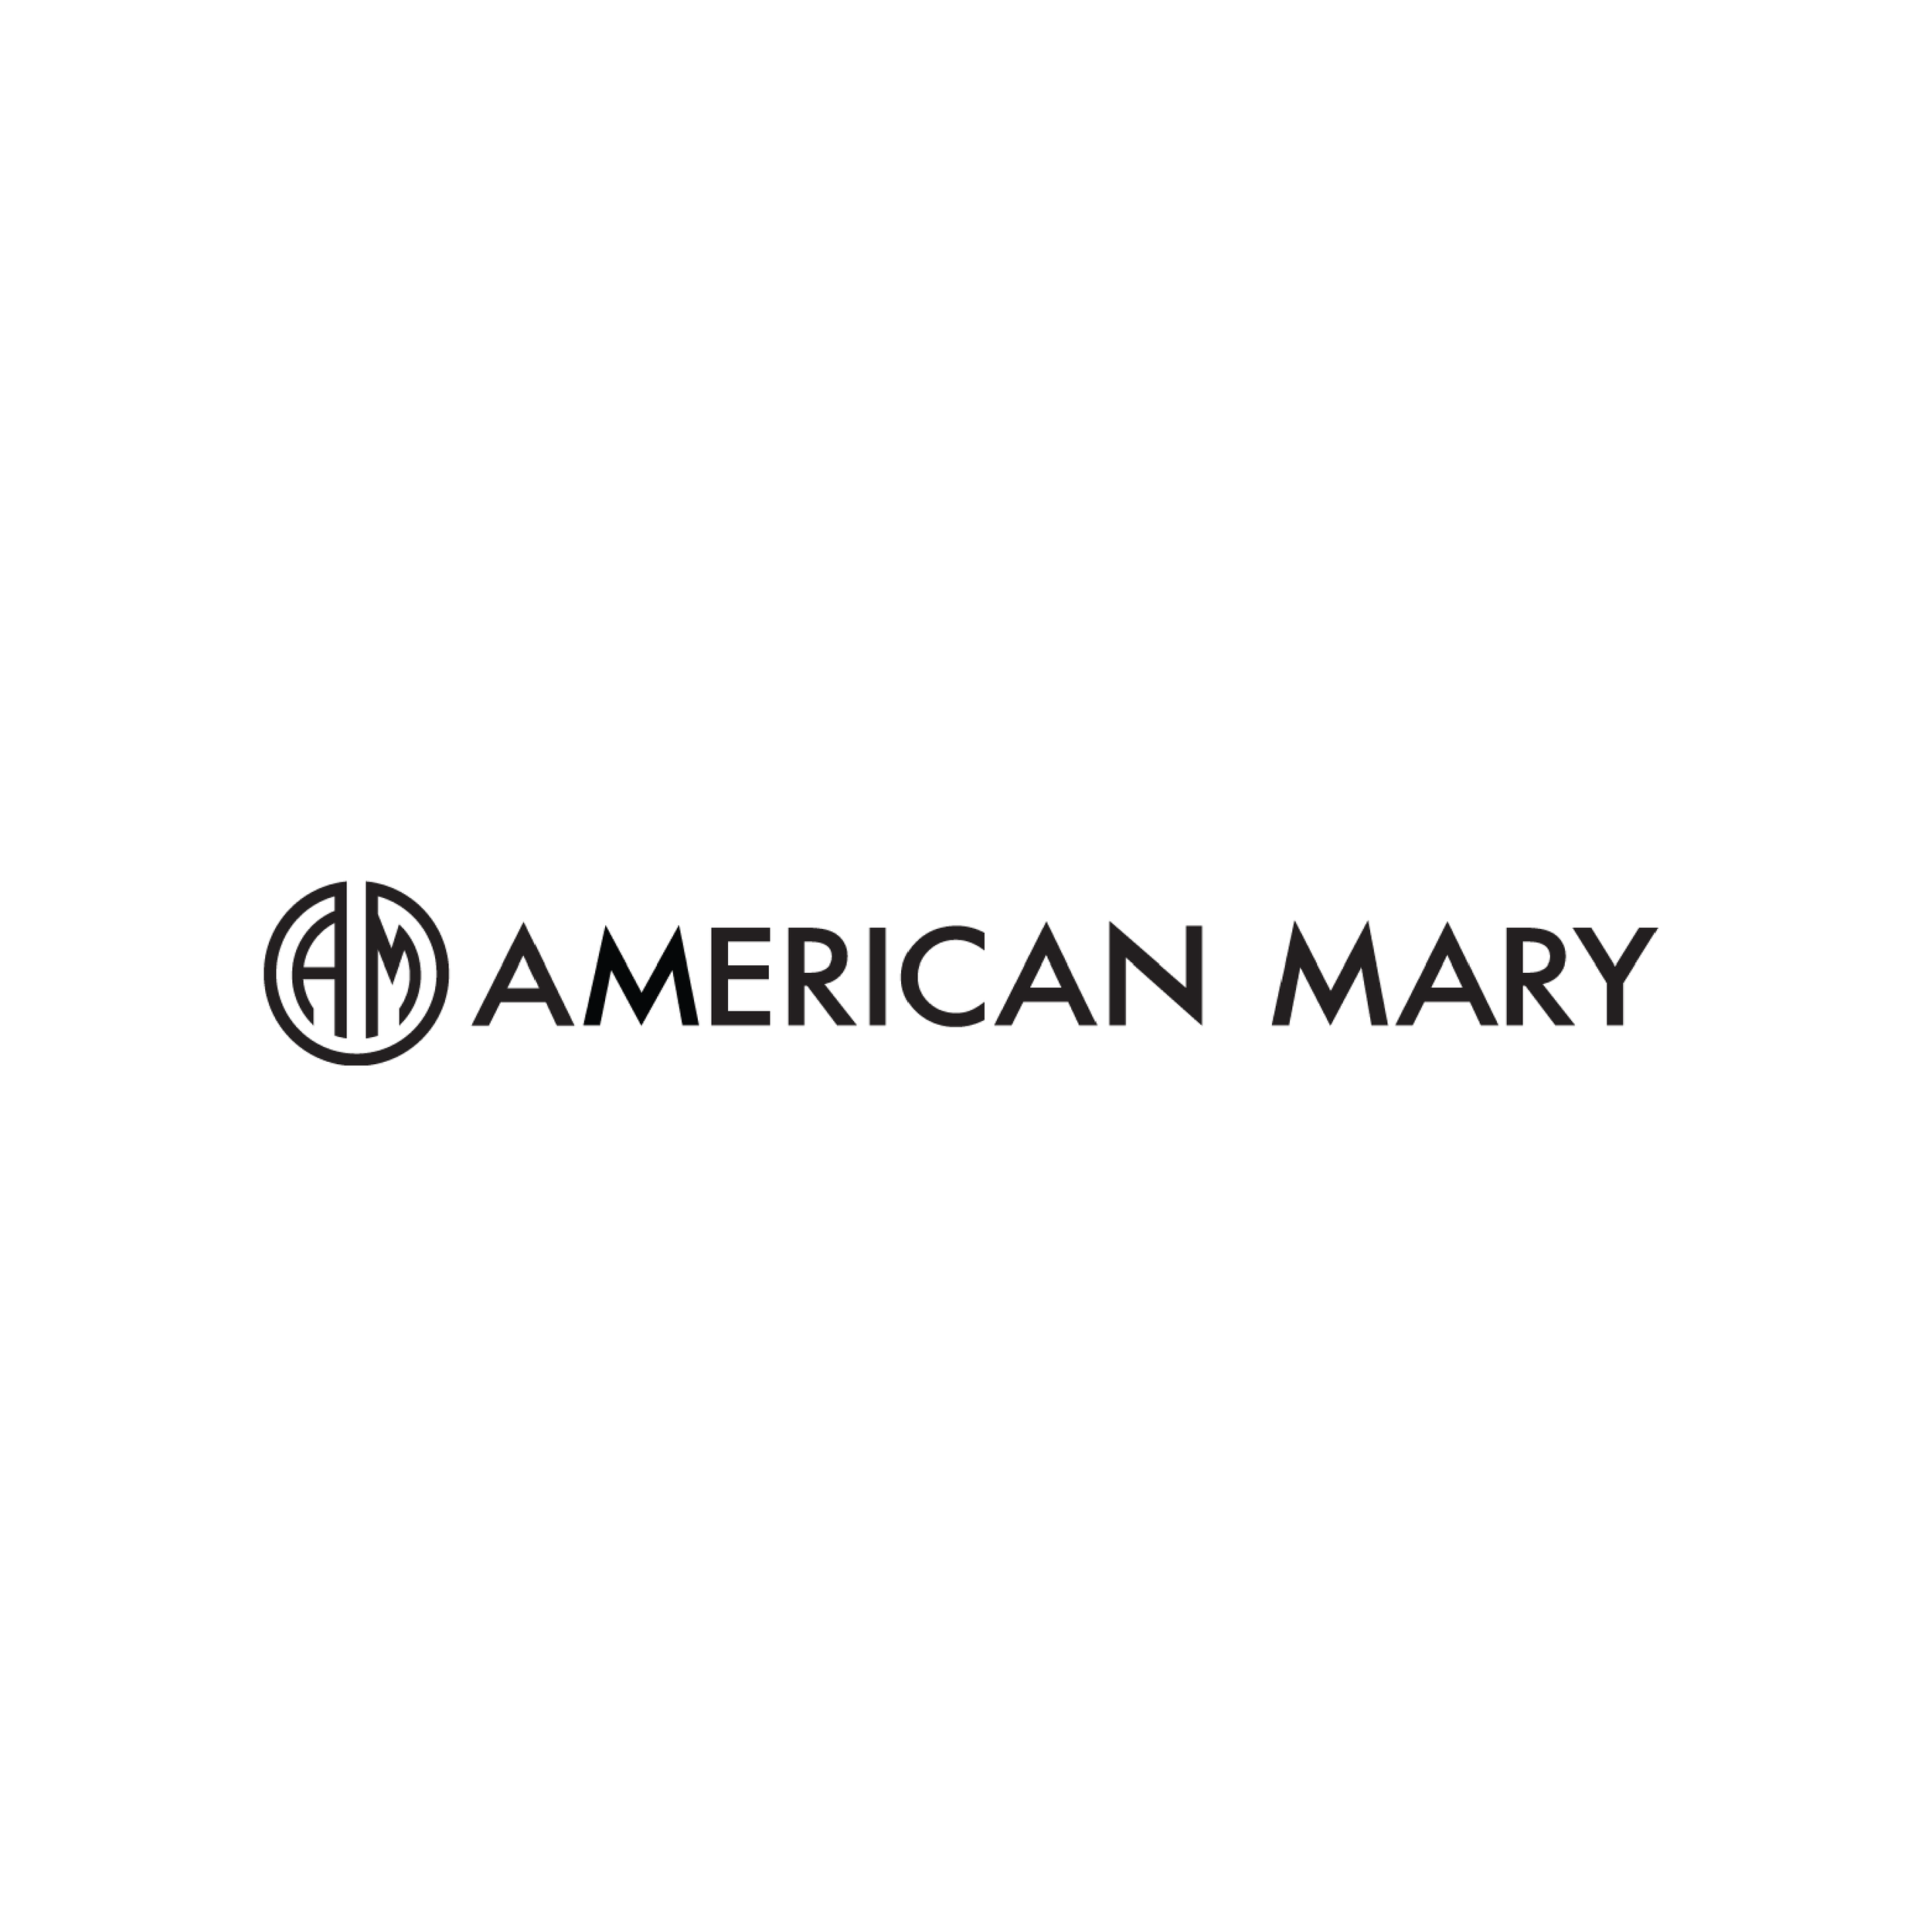 AmericanMary-01.png